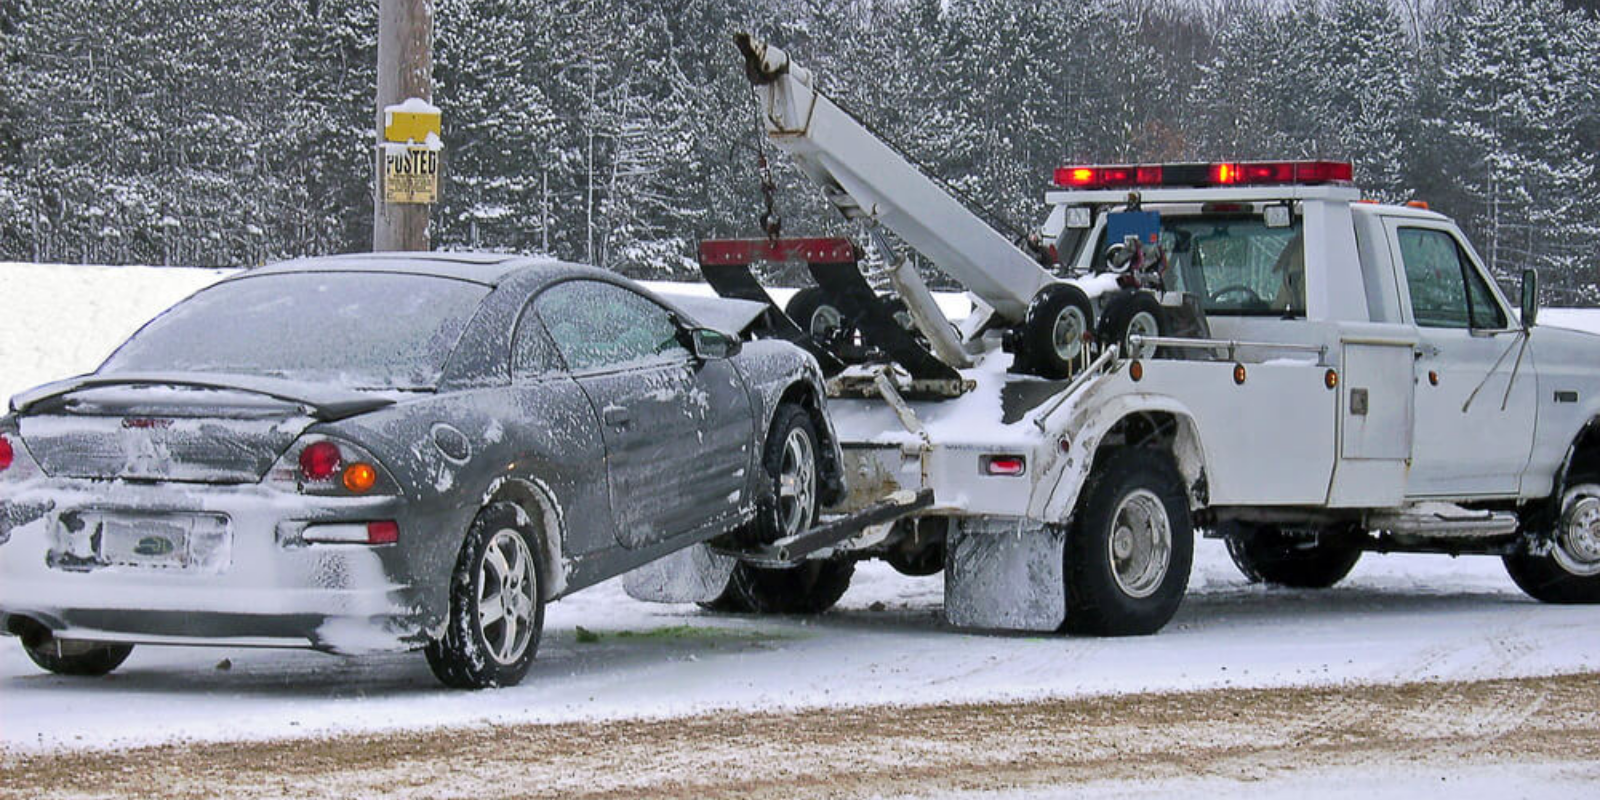 Toronto tow truck drivers shot at on Hwy 401 in two separate incidents